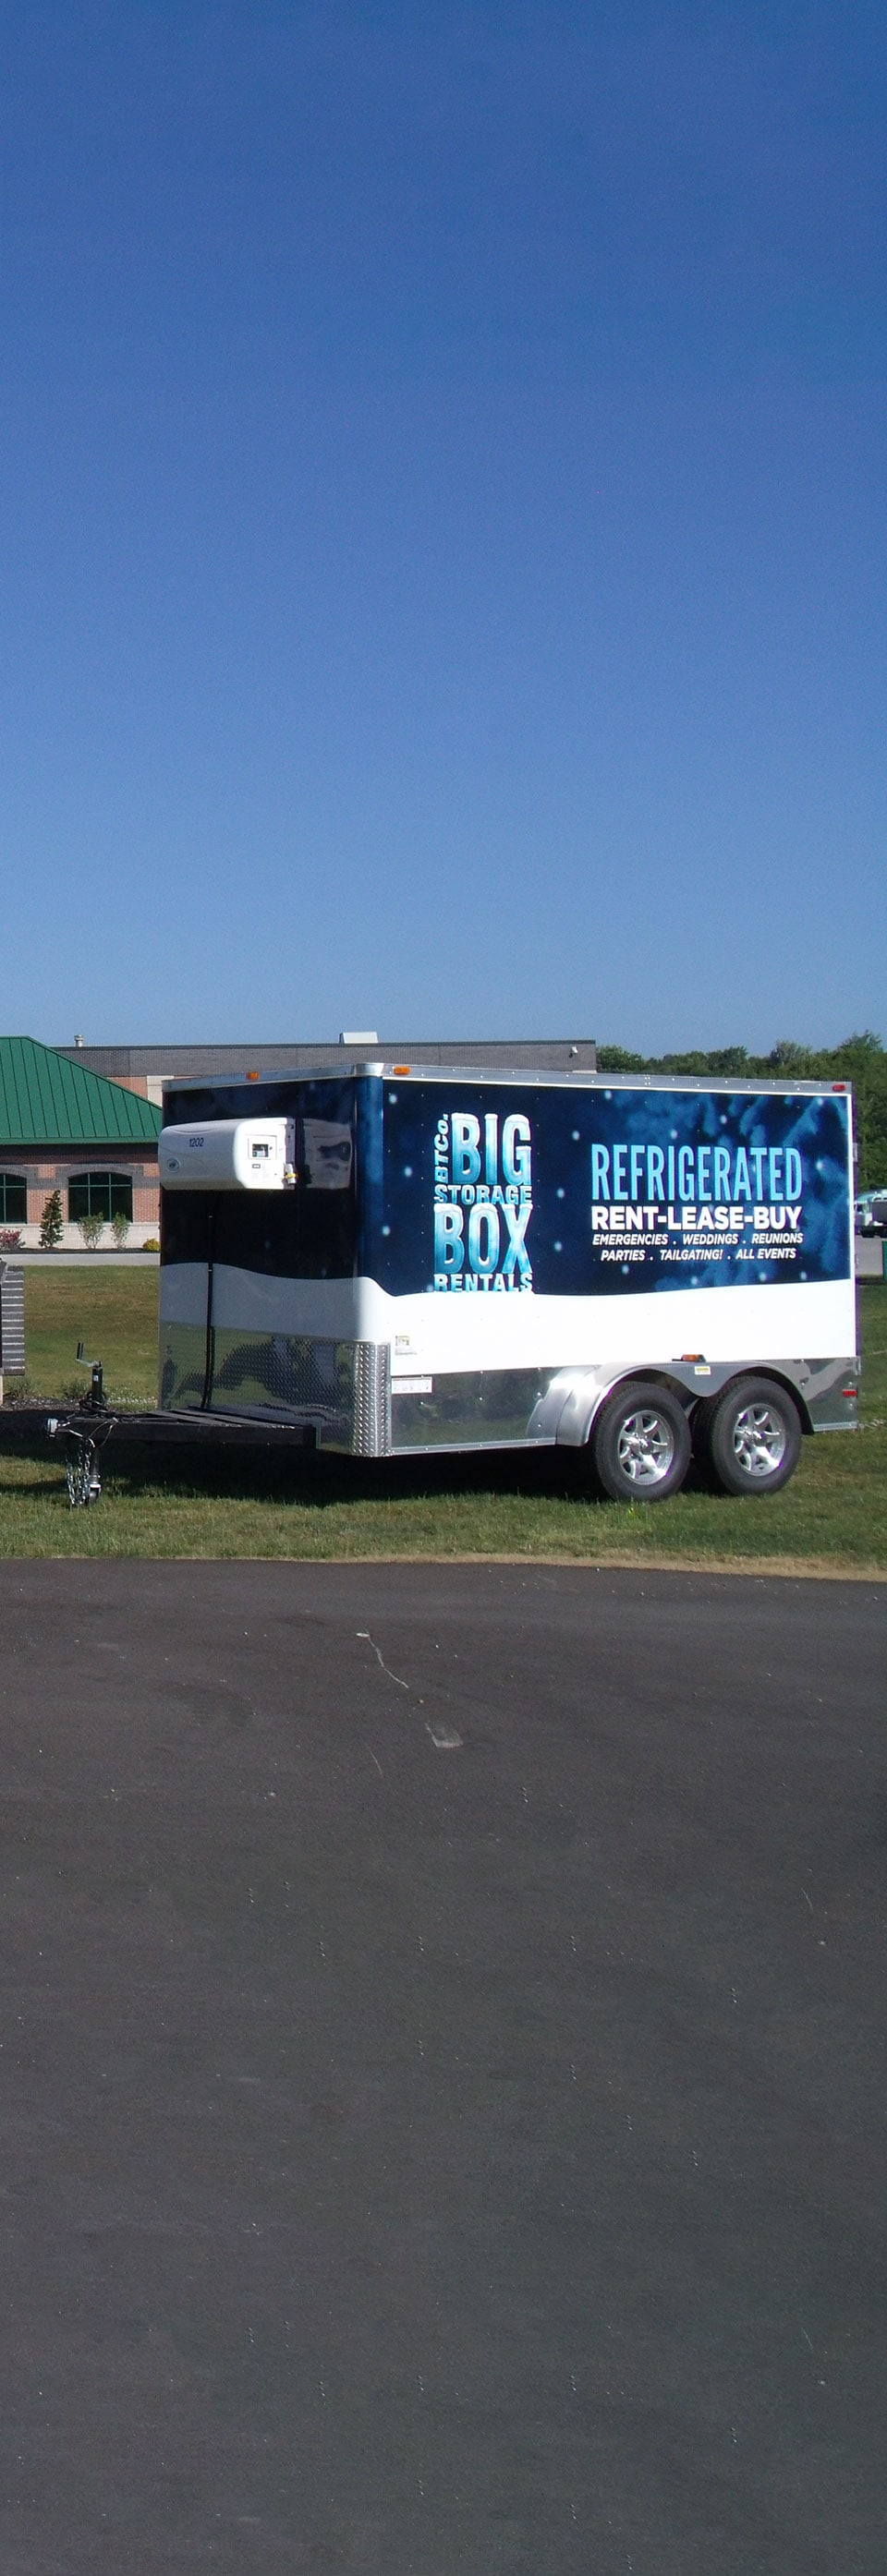 Portable refrigerated storage parked at an outdoor location.